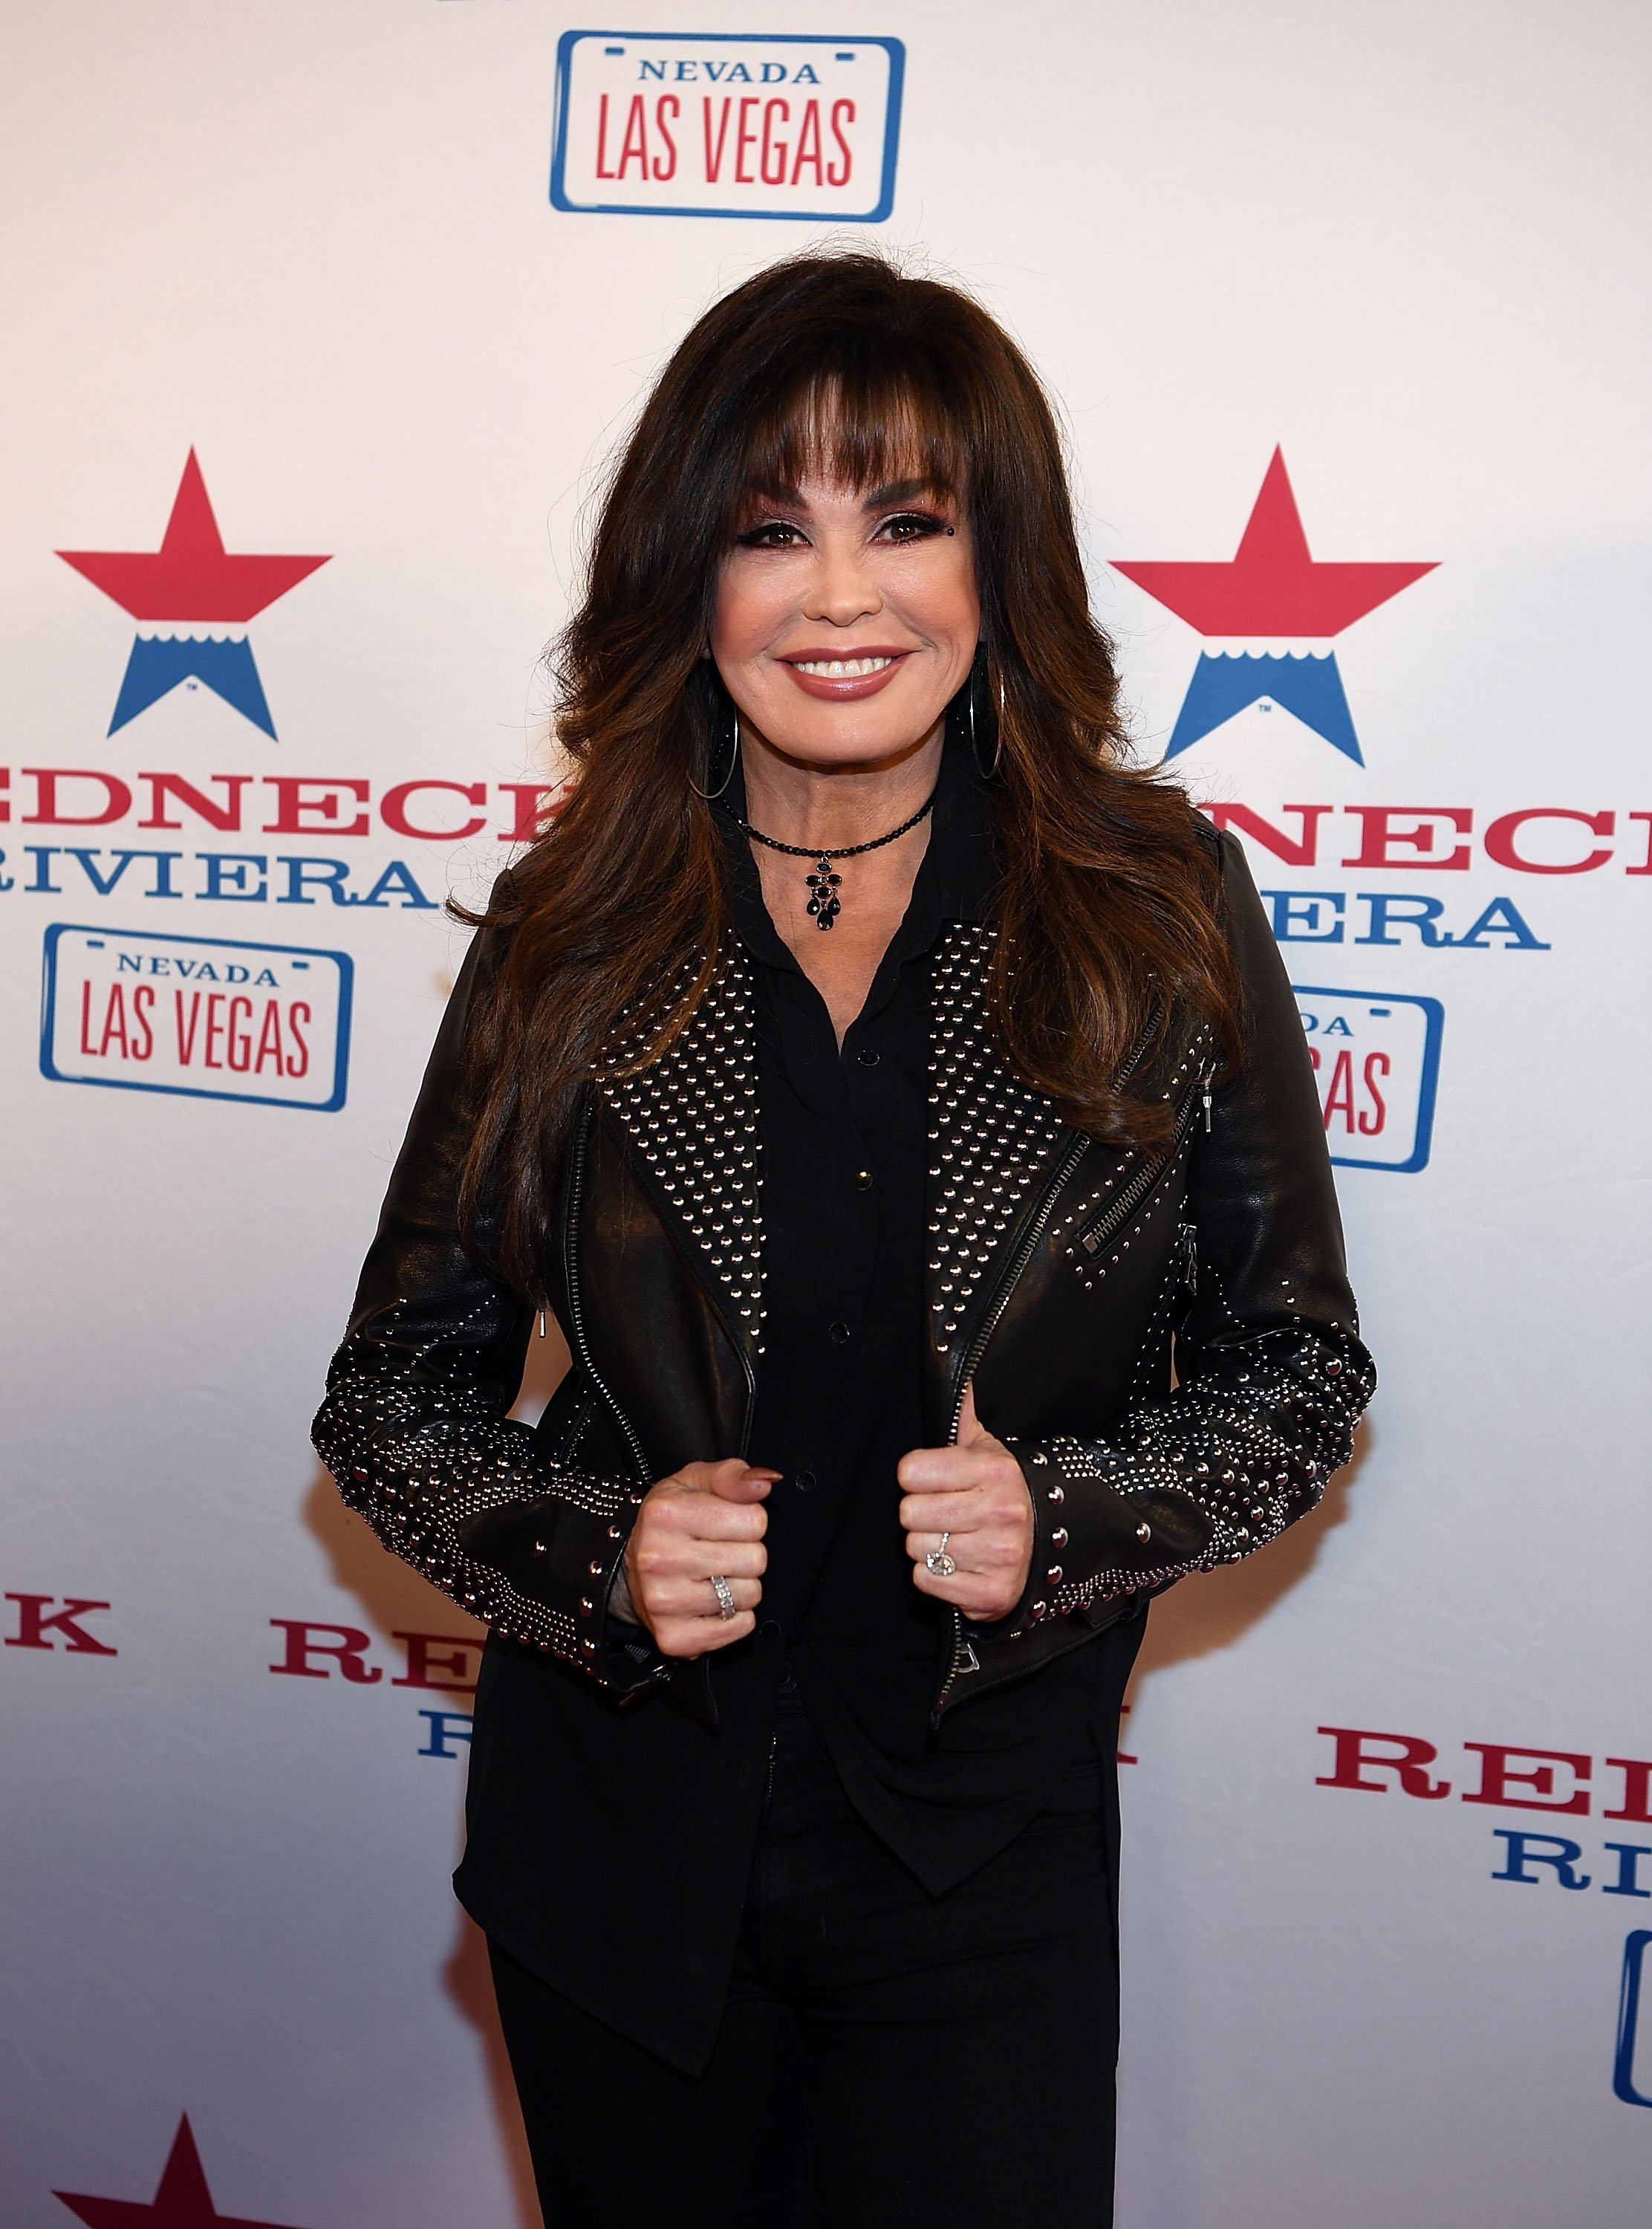 Marie Osmond arrives at the Redneck Riveria VIP grand opening on February 16, 2017, in Las Vegas, Nevada. | Source: Getty Images.